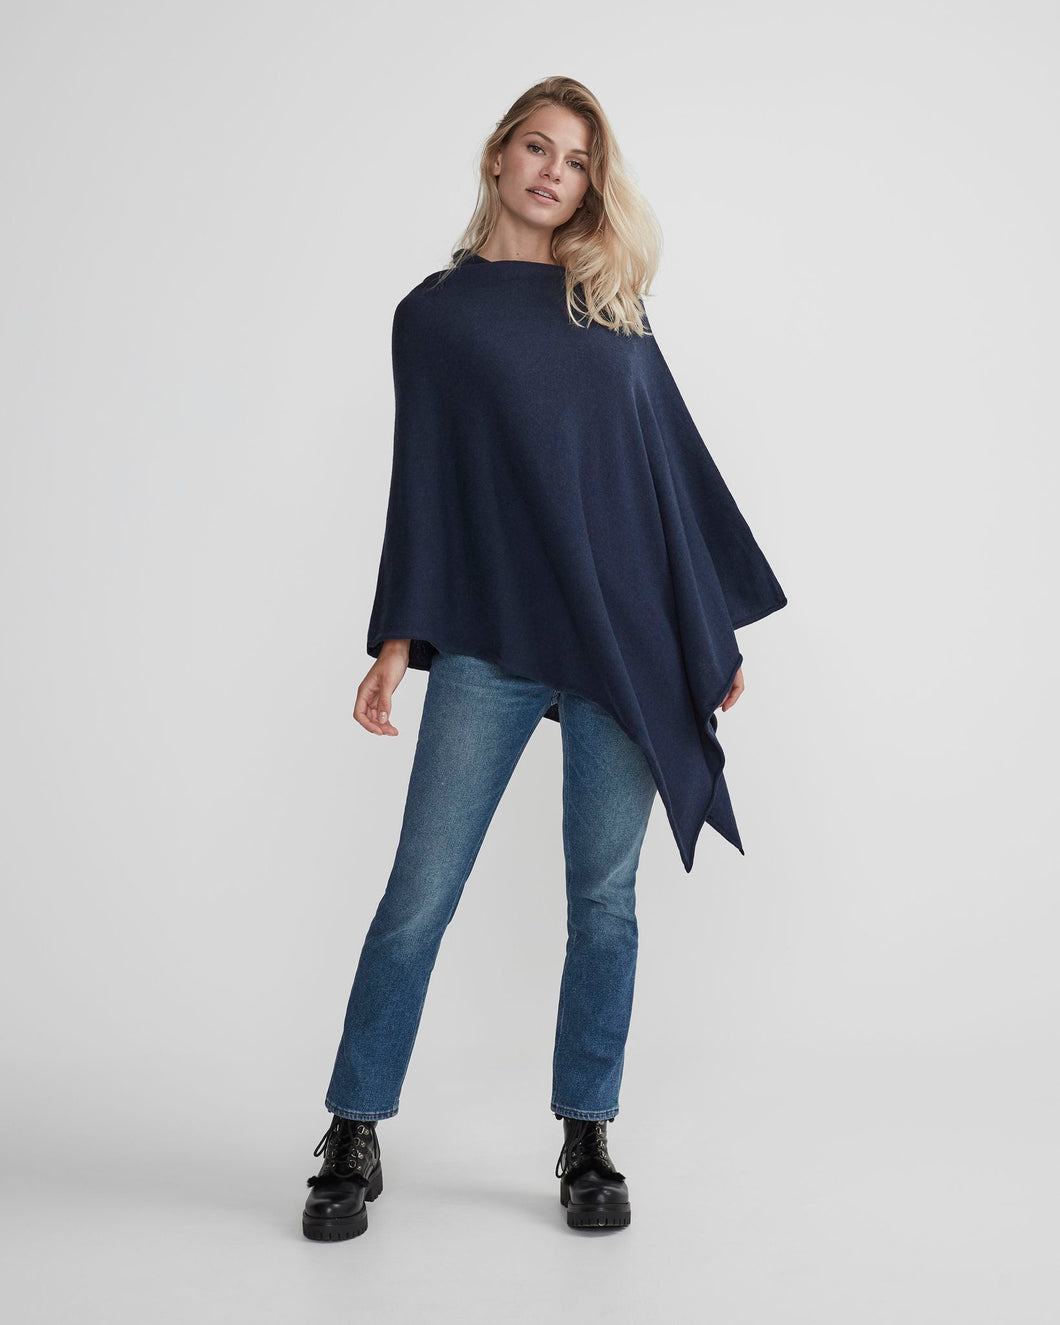 Holebrook Sofie Women's Merino Wool Poncho